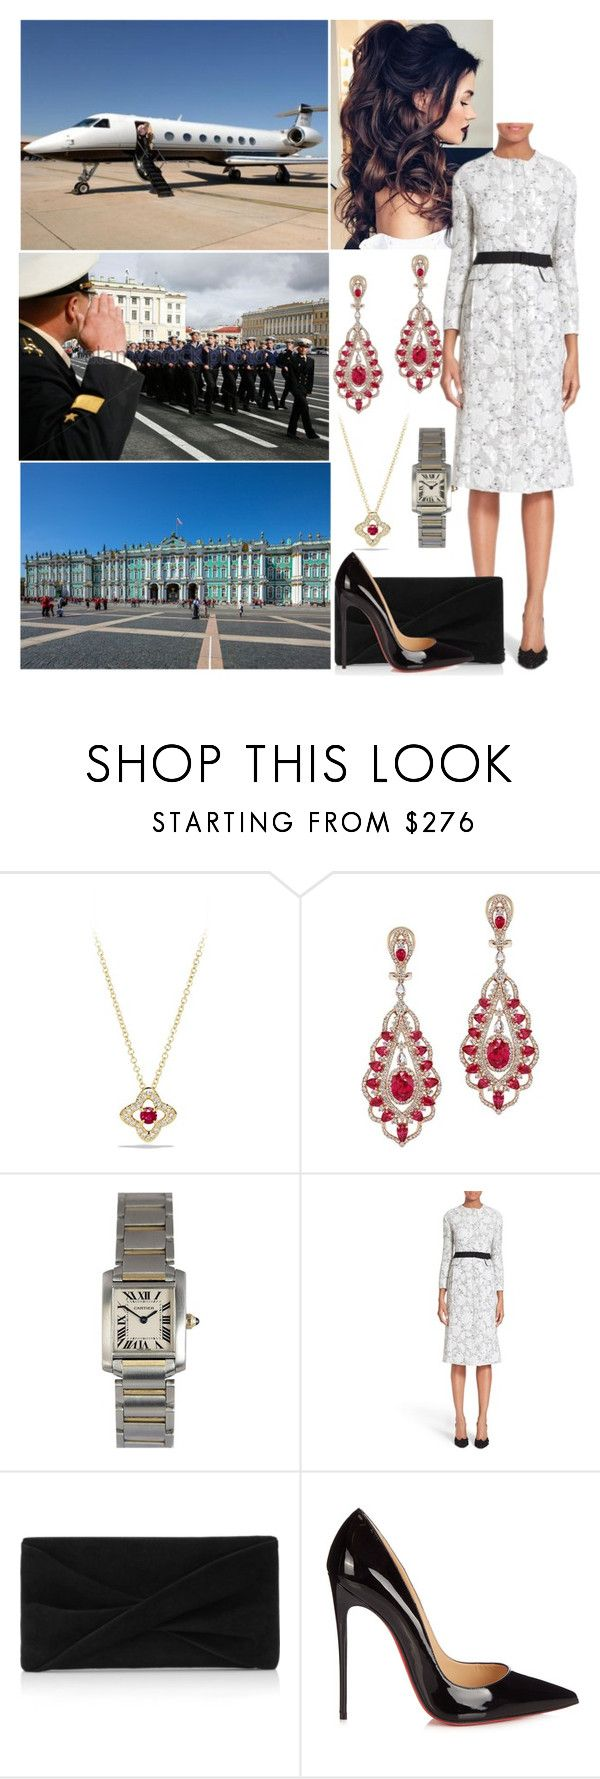 """Day 3 - Viewing Troops and Leaving from Moscow Airport"" by alicewindsor ❤ liked on Polyvore featuring David Yurman, Cartier, Oscar de la Renta, Reiss and Christian Louboutin"